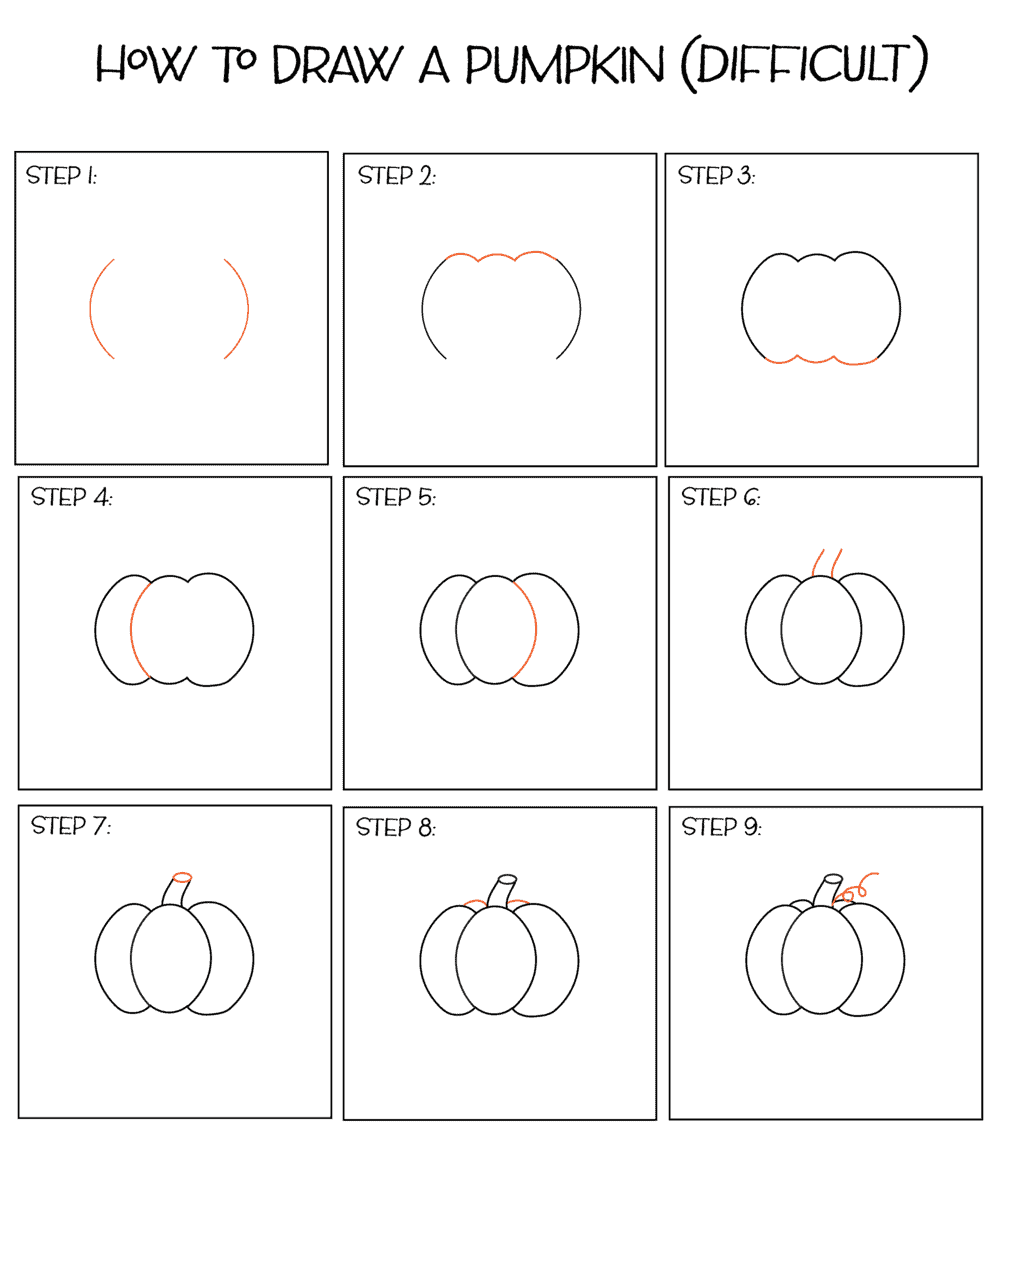 How-to-draw-a-pumpkin-easy